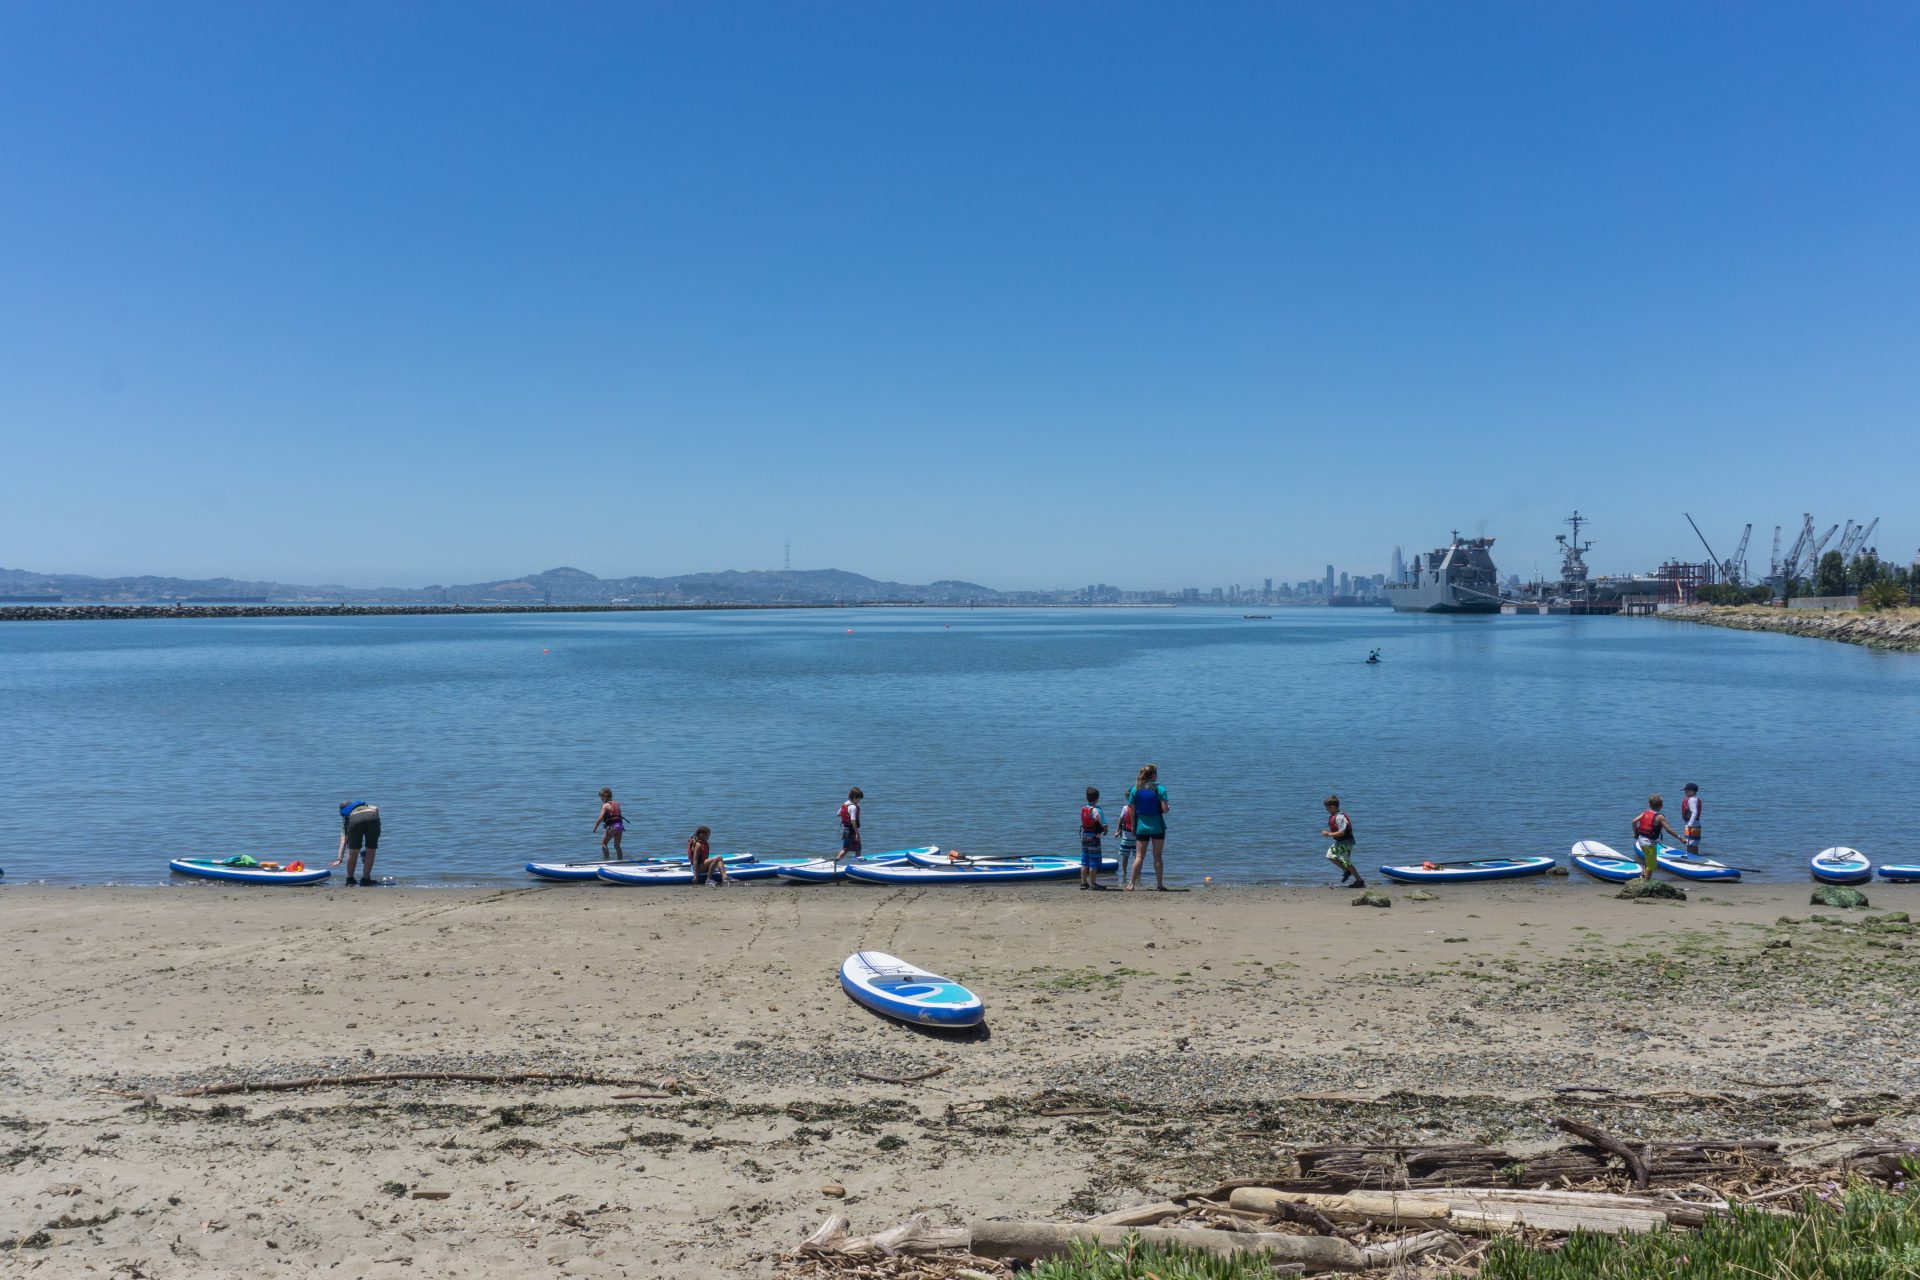 standup paddle board lined up along water's edge, with people standing around them